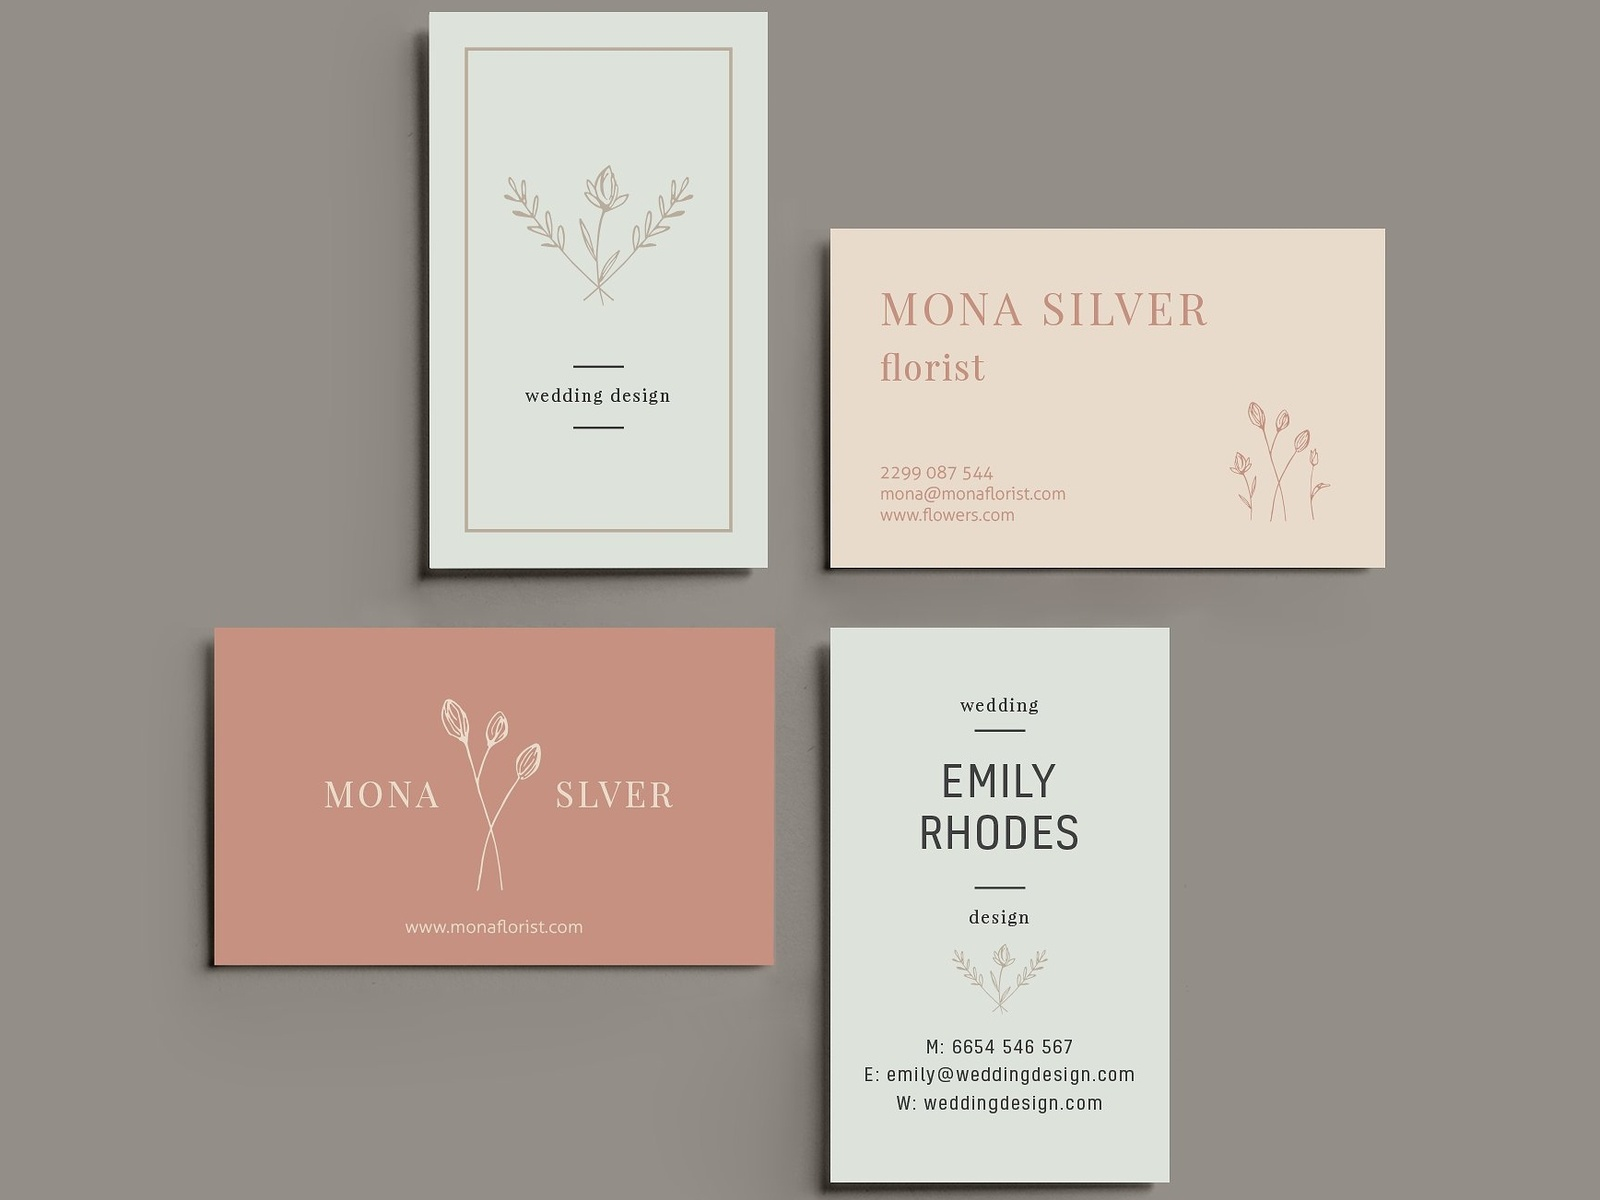 Floral business card template by business cards dribbble httpscreativemarketwildones2976648 floral business card template uaurom accmission Choice Image